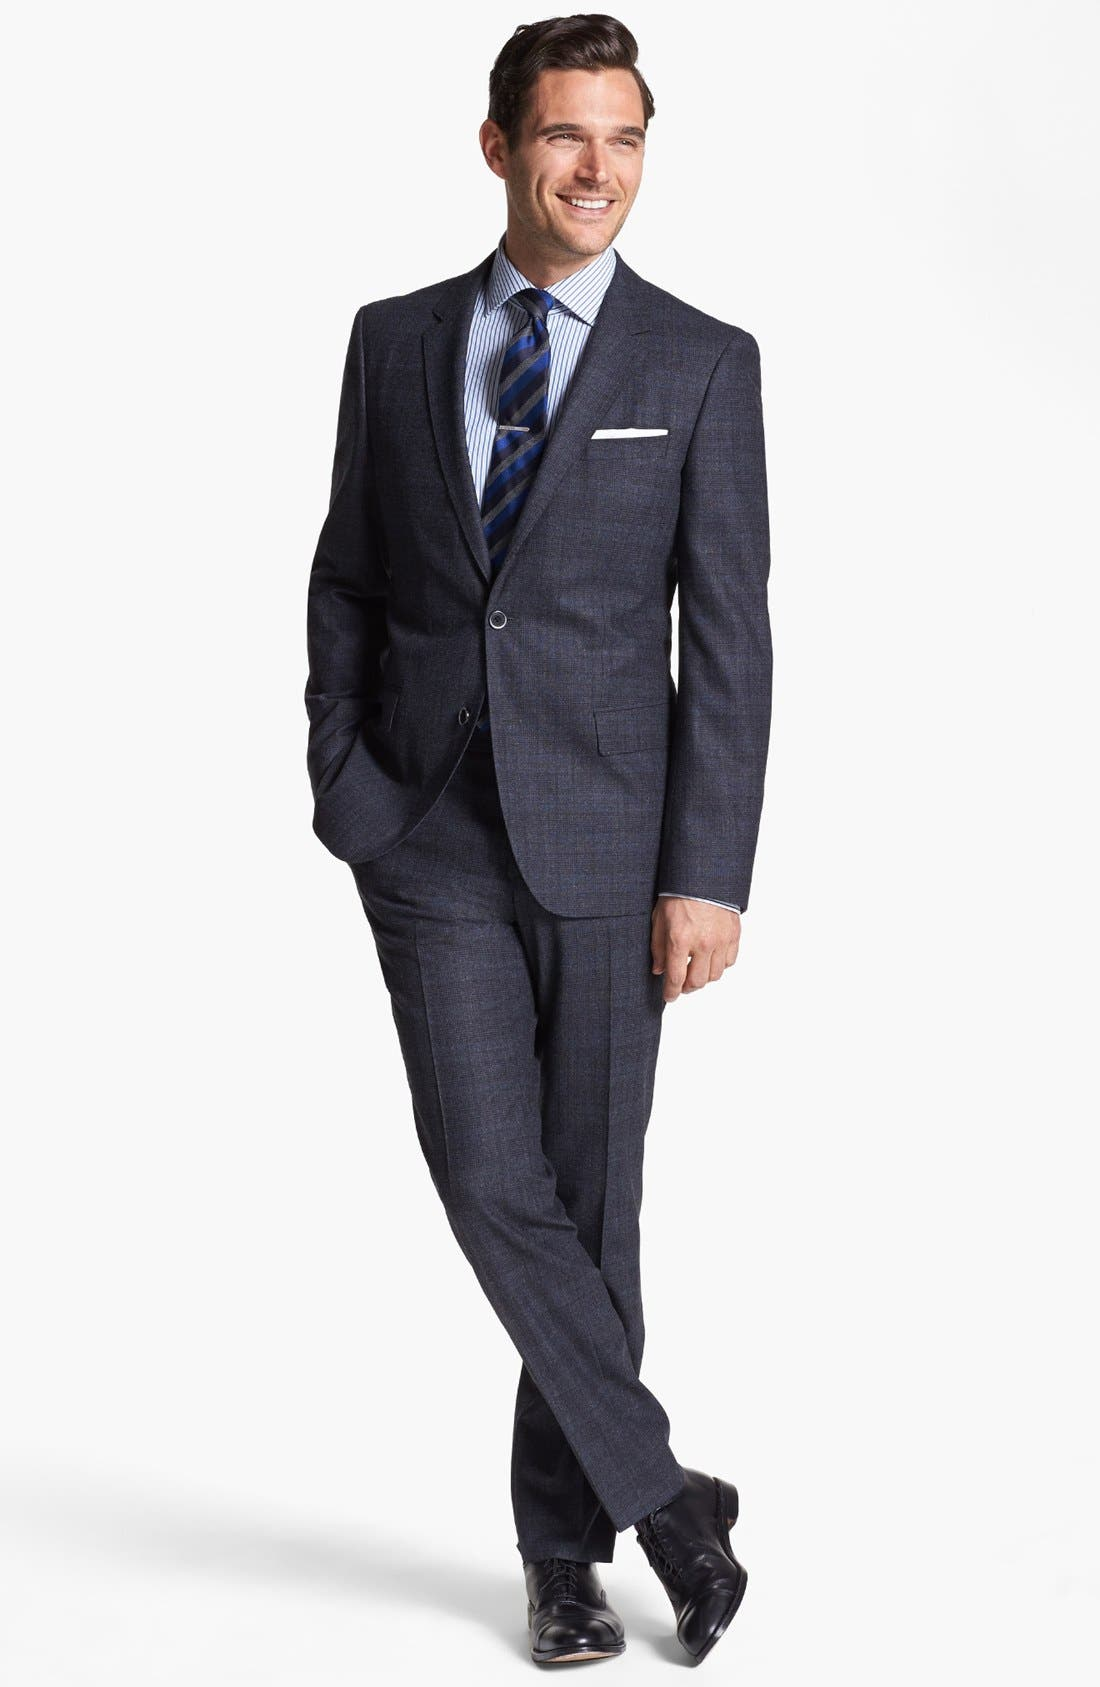 Alternate Image 1 Selected - BOSS HUGO BOSS 'Hedge/Gense' Trim Fit Plaid Suit